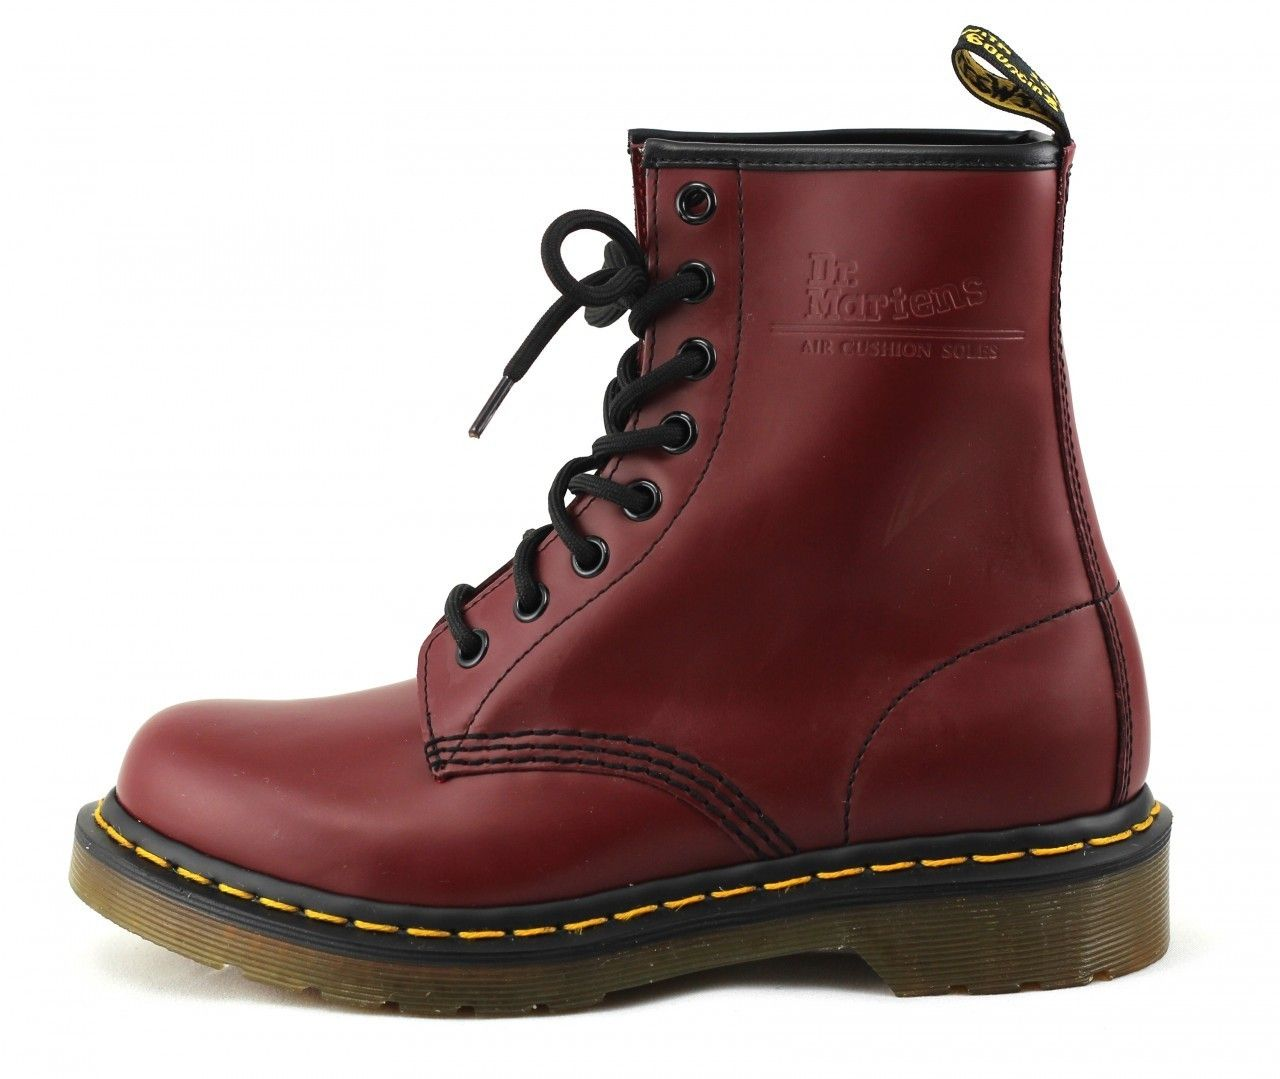 dr martens womens 1460 oxblood low heel combat boot shiekh shoes. Black Bedroom Furniture Sets. Home Design Ideas